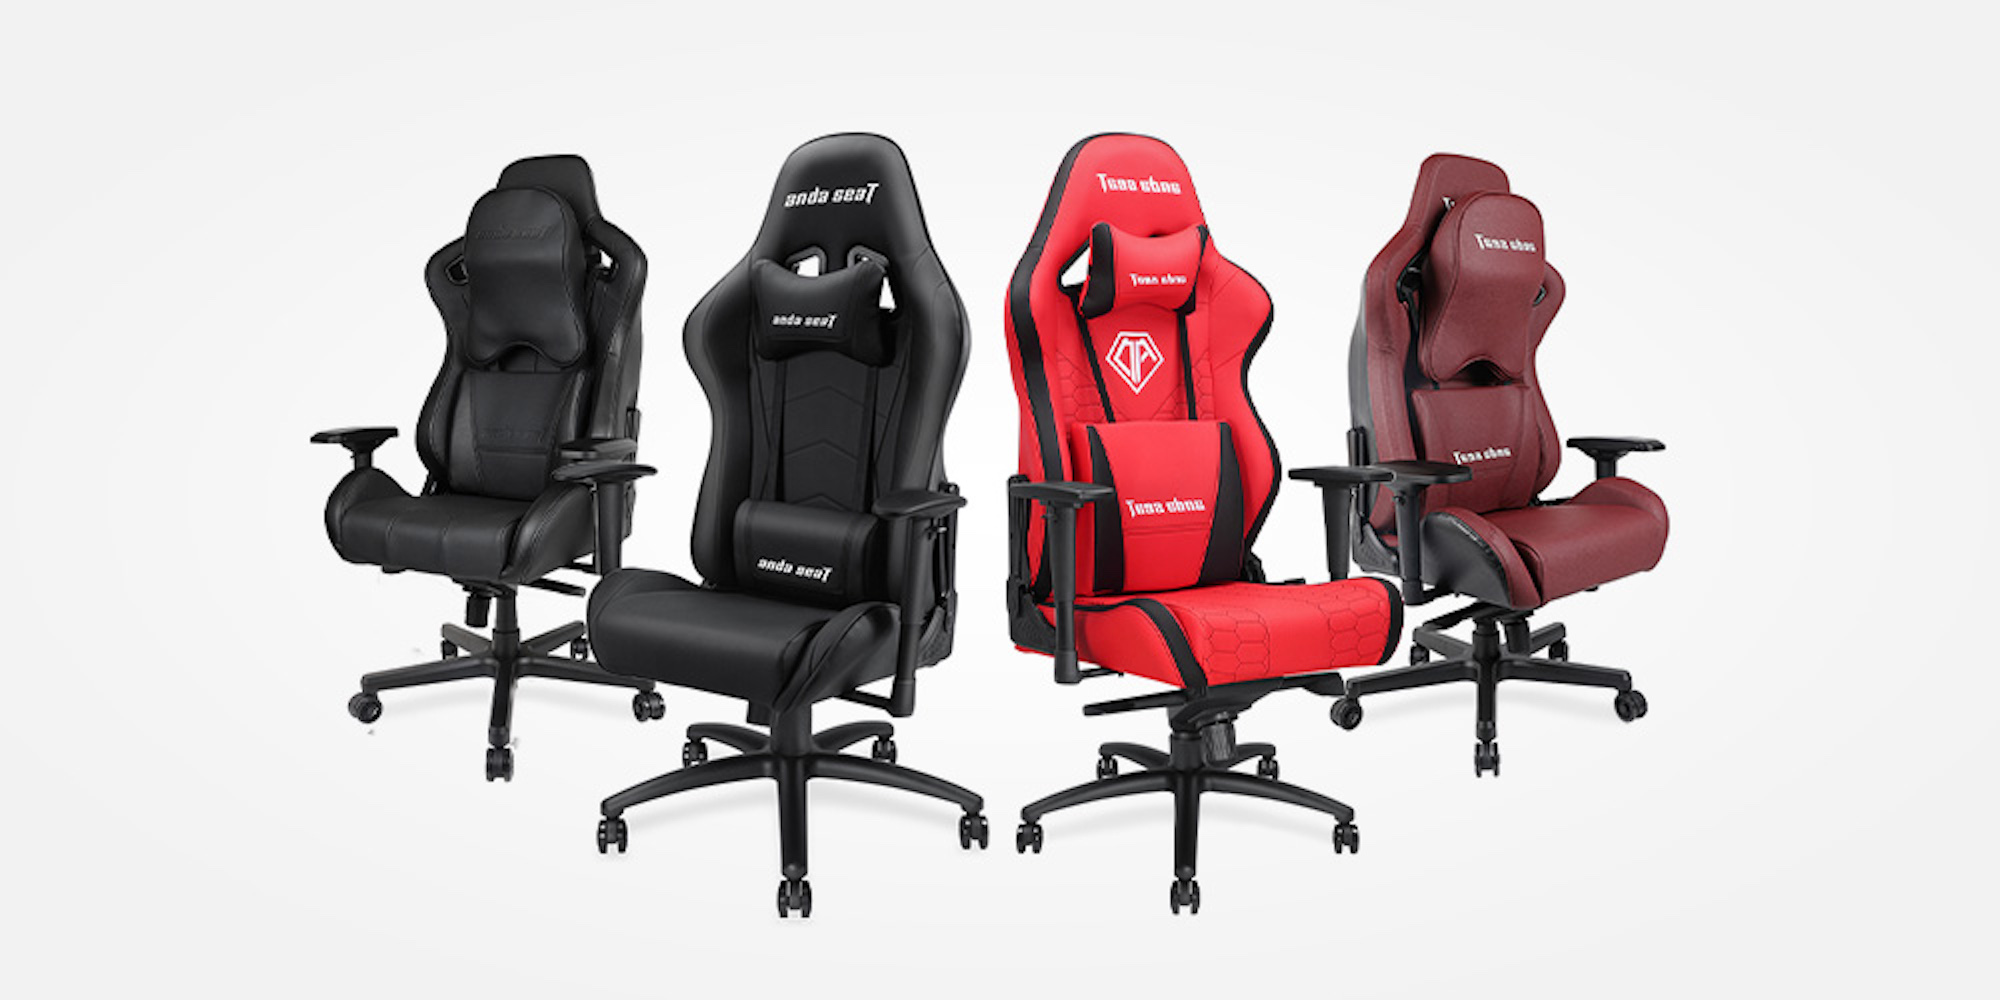 Enjoy gaming with the Anda Seat Axe Series Gaming Chair, now $270 (Orig. $350)